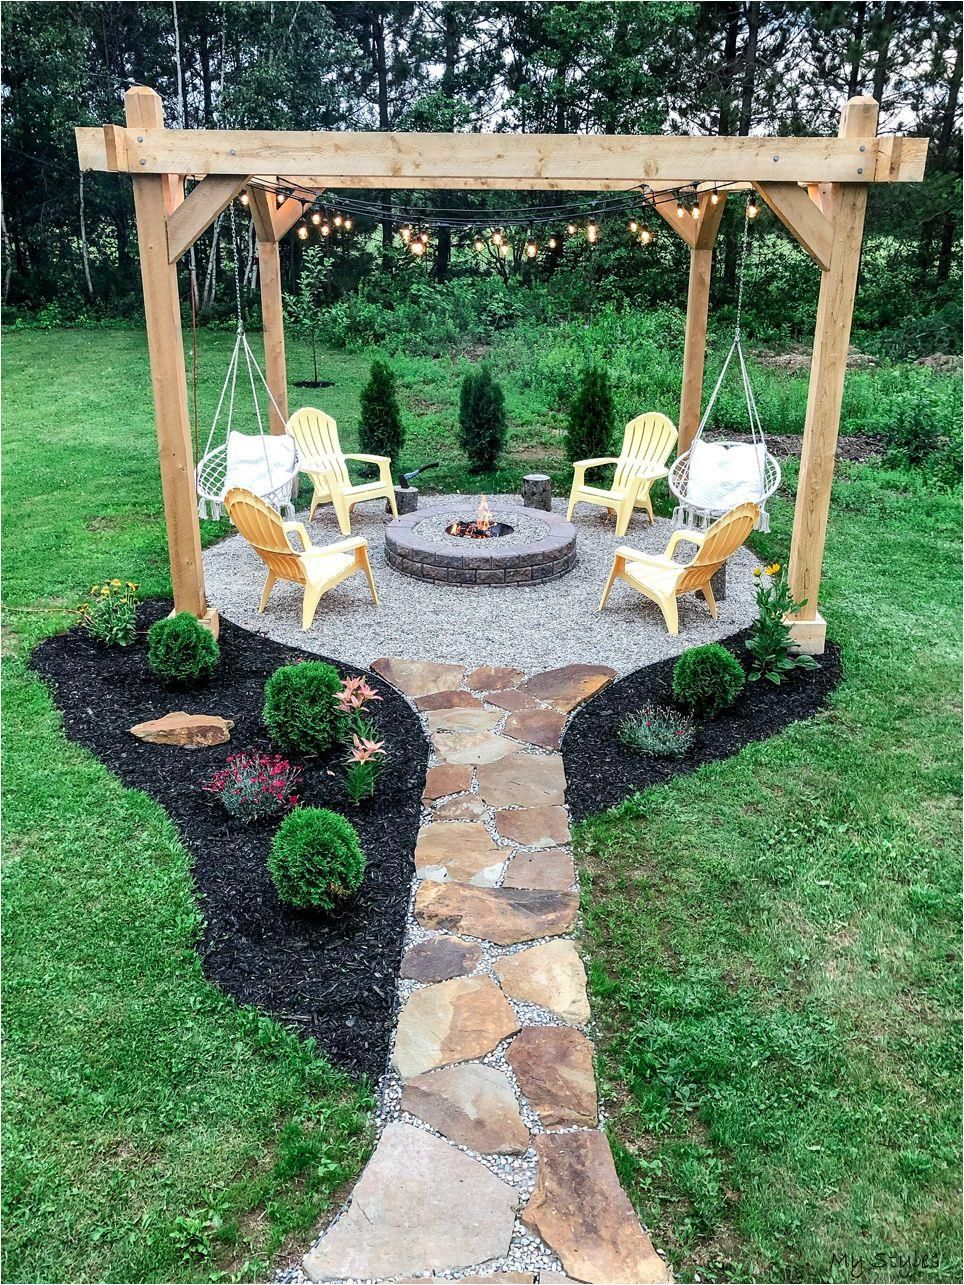 Jul 19 2019 After Reviewing Multiple Images Online Of Different Fire Pit Design This Is What I Ended Doing Outdoor Designs Backyard